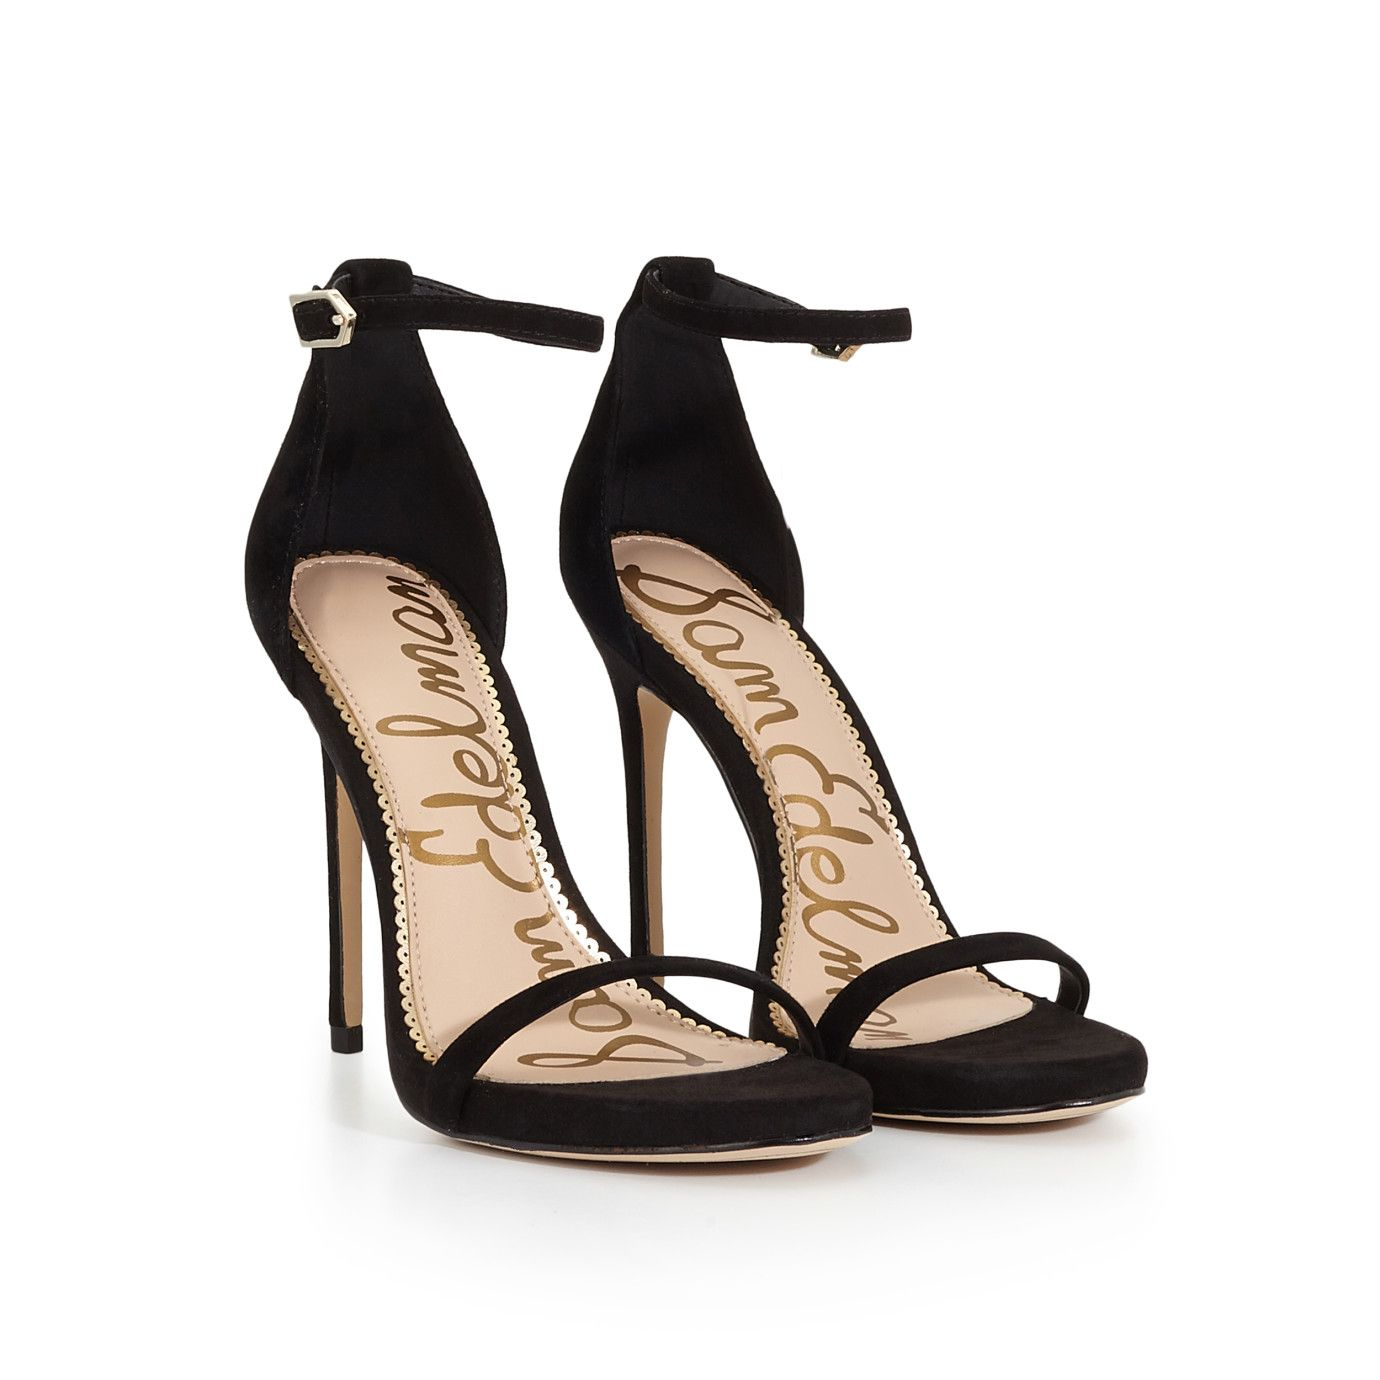 495cc33b179 Our Ariella Ankle Strap Sandal is sexy and sophisticated in tandem. This  sleek stiletto is inspired by Parisian style and adds both edge and glamour  to any ...